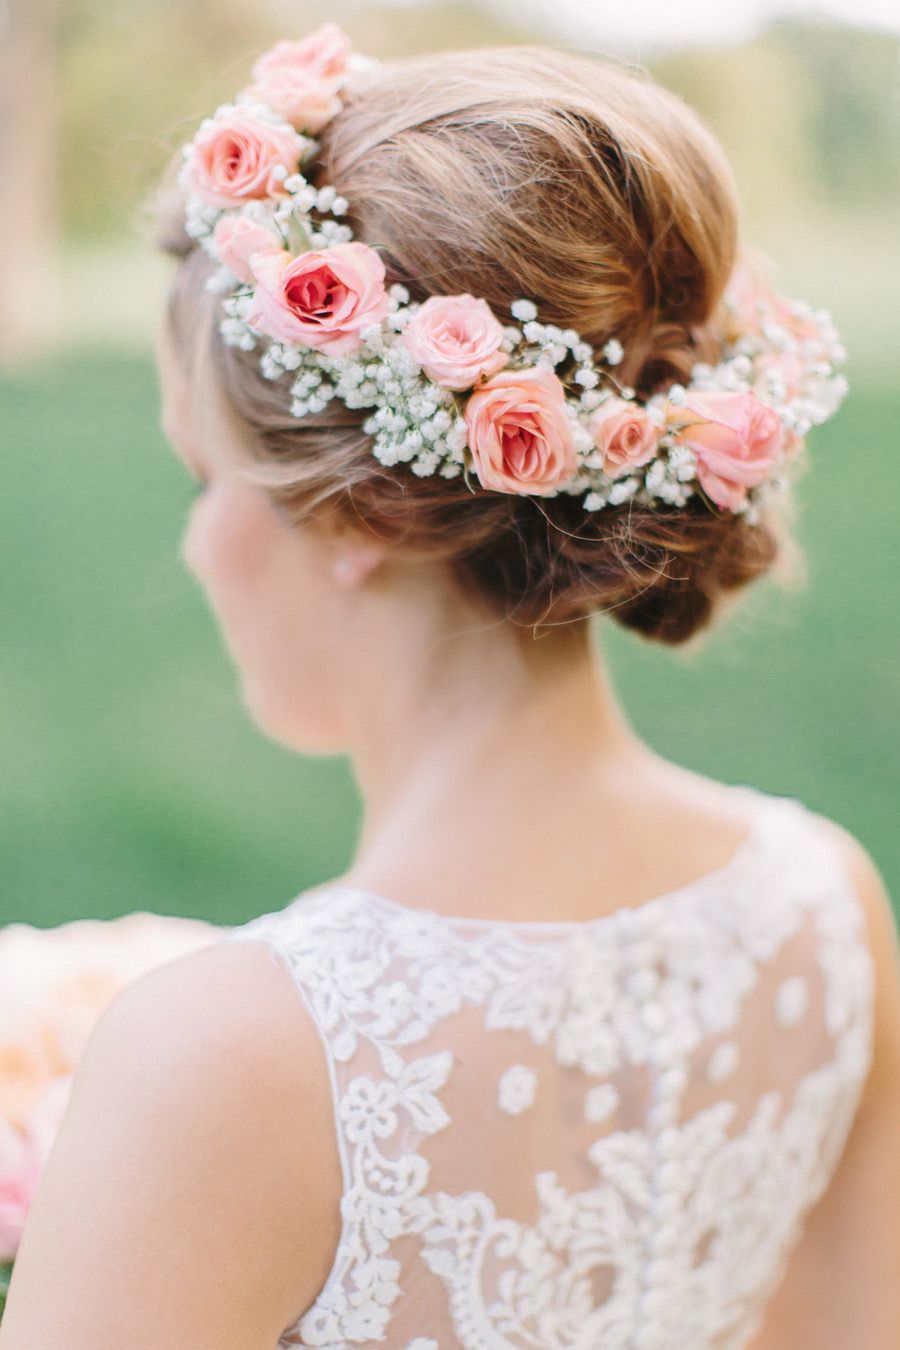 #hair-accessories, #hairstyles, #flower-crown Photography: Mike Cassimatis - MNC Photography - mnc-photography.com View entire slideshow: Most Loved Pics of the Week on http://www.stylemepretty.com/collection/738/